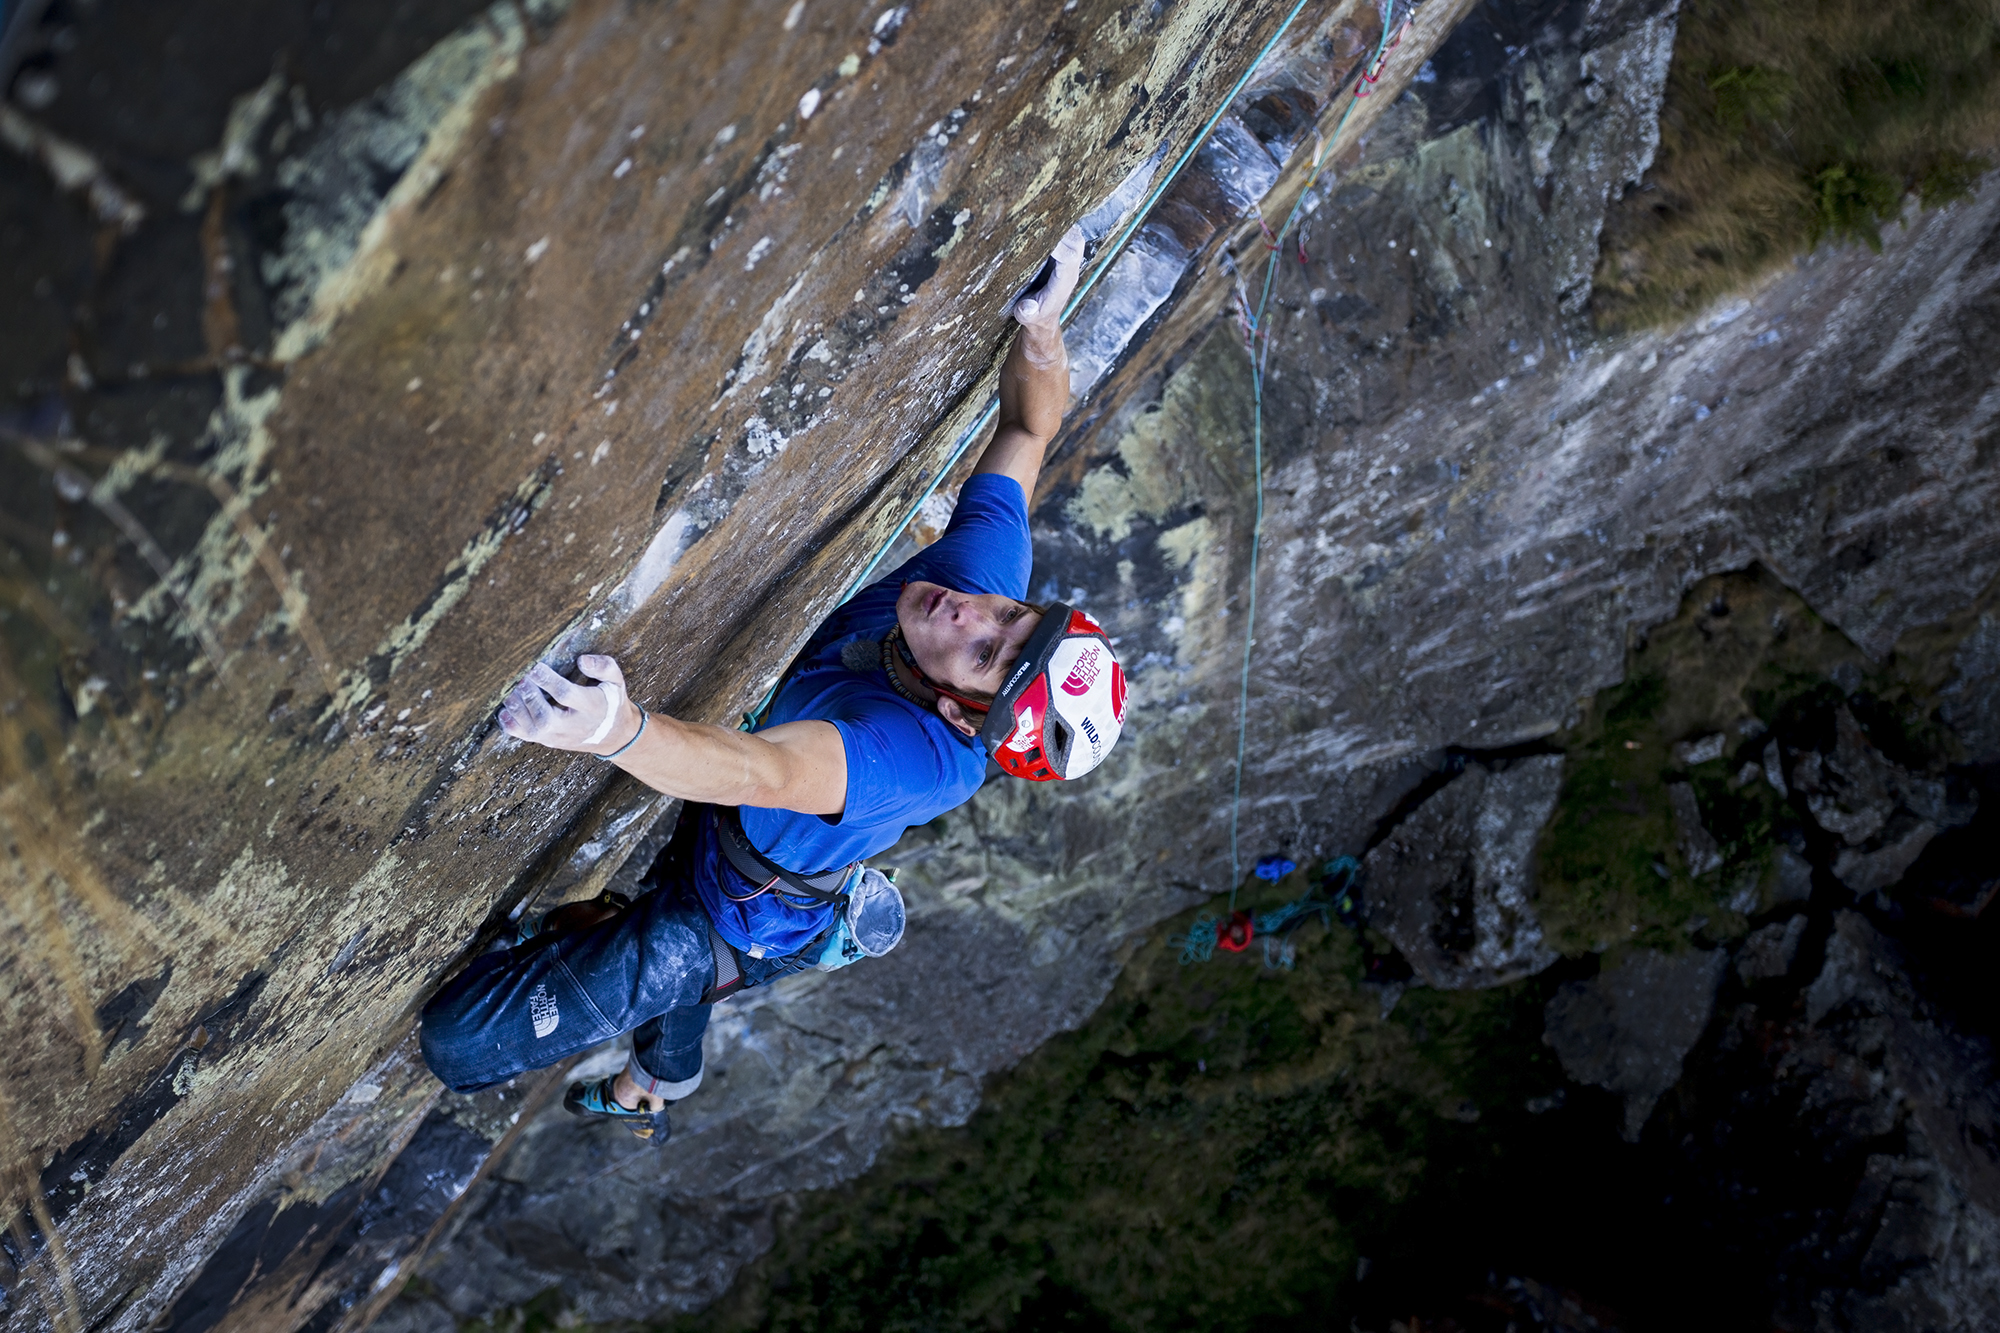 James Pearson at the start of crux of Rhapsody (E11) at Dumbarton. Image: Chris Prescott/ Hot Aches Productions